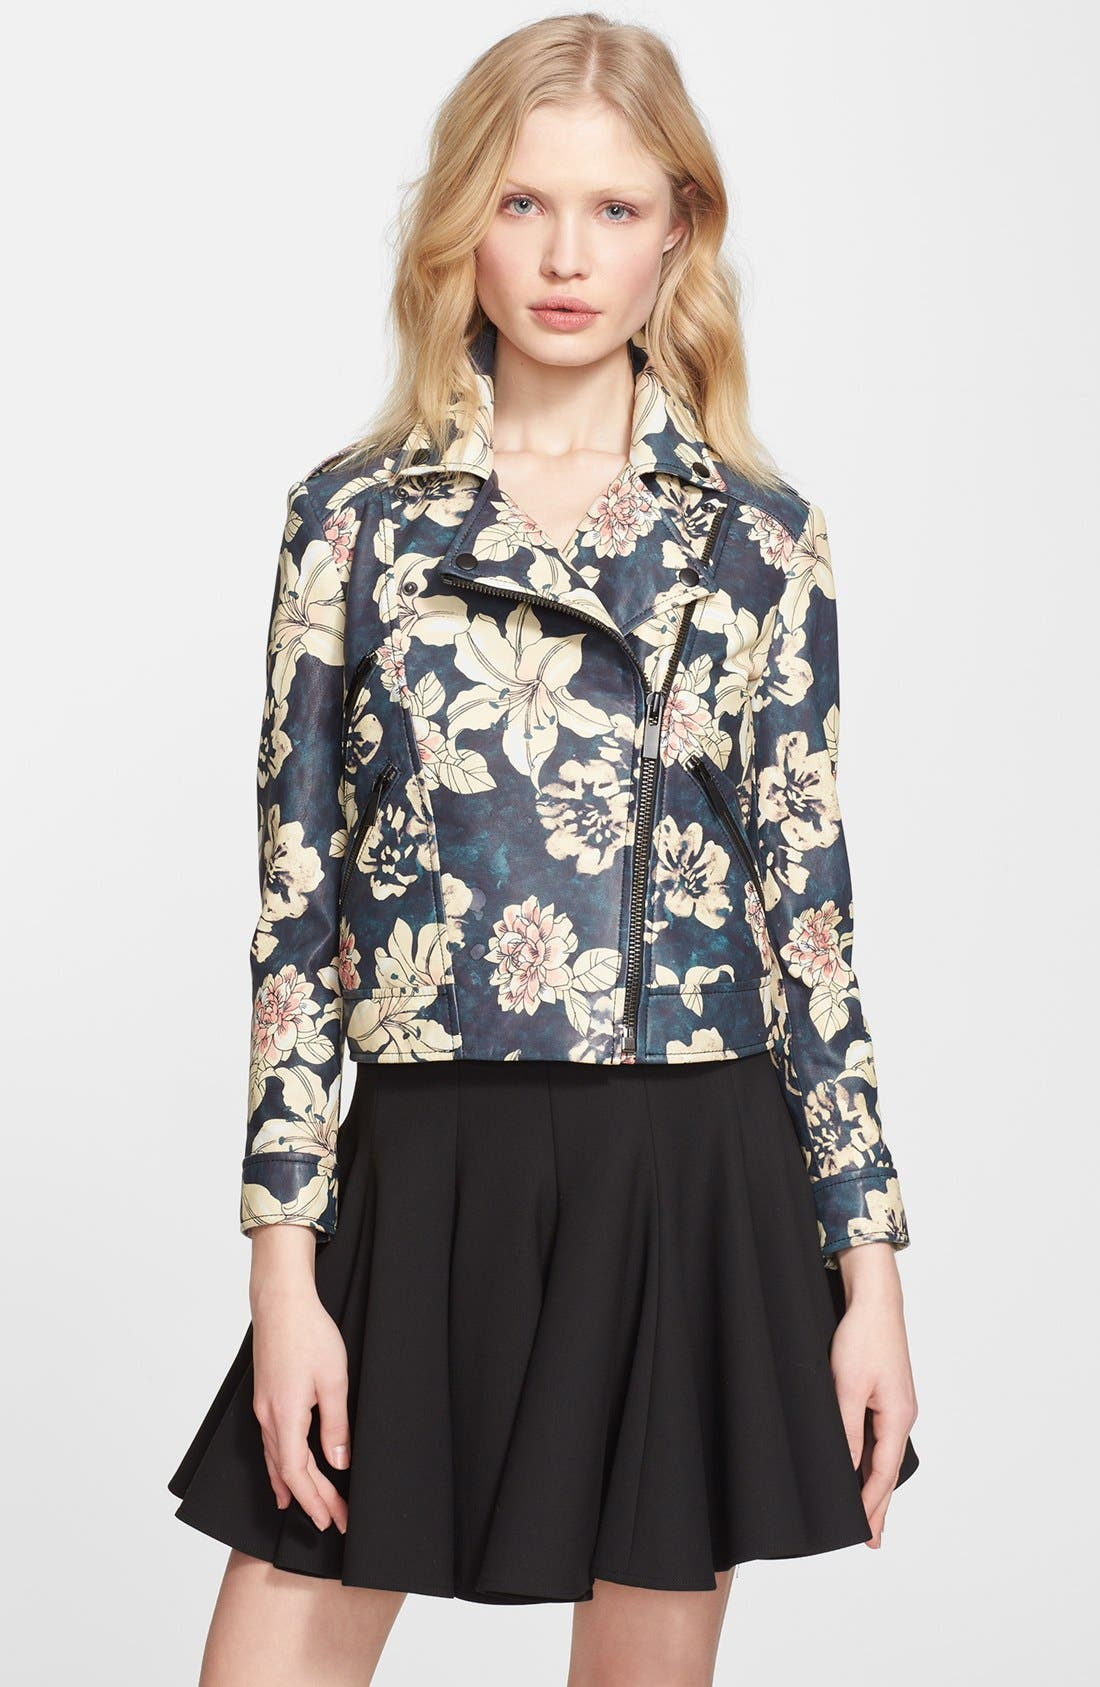 ELIZABETH AND JAMES 'Lily Erwan' Print Leather Jacket, Main, color, 001